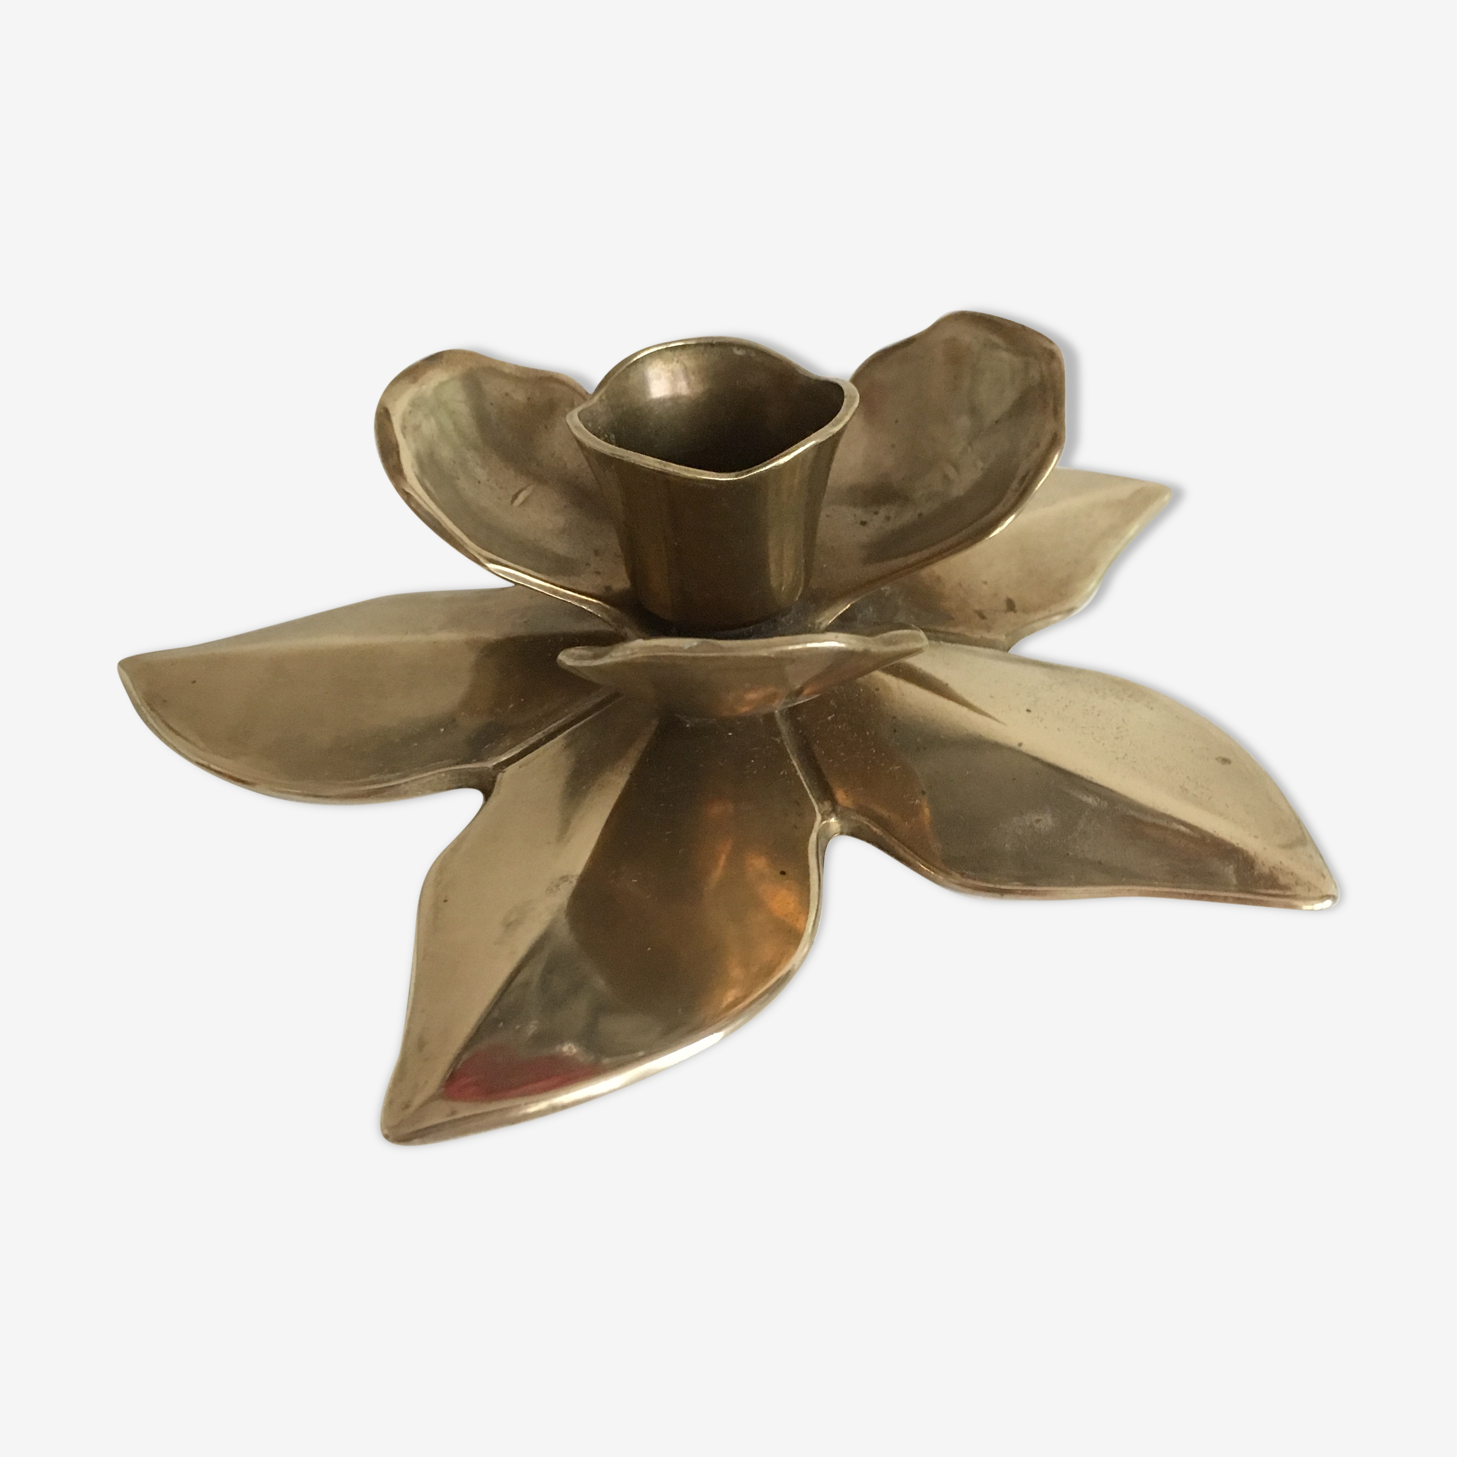 Flower-shaped brass candleholder